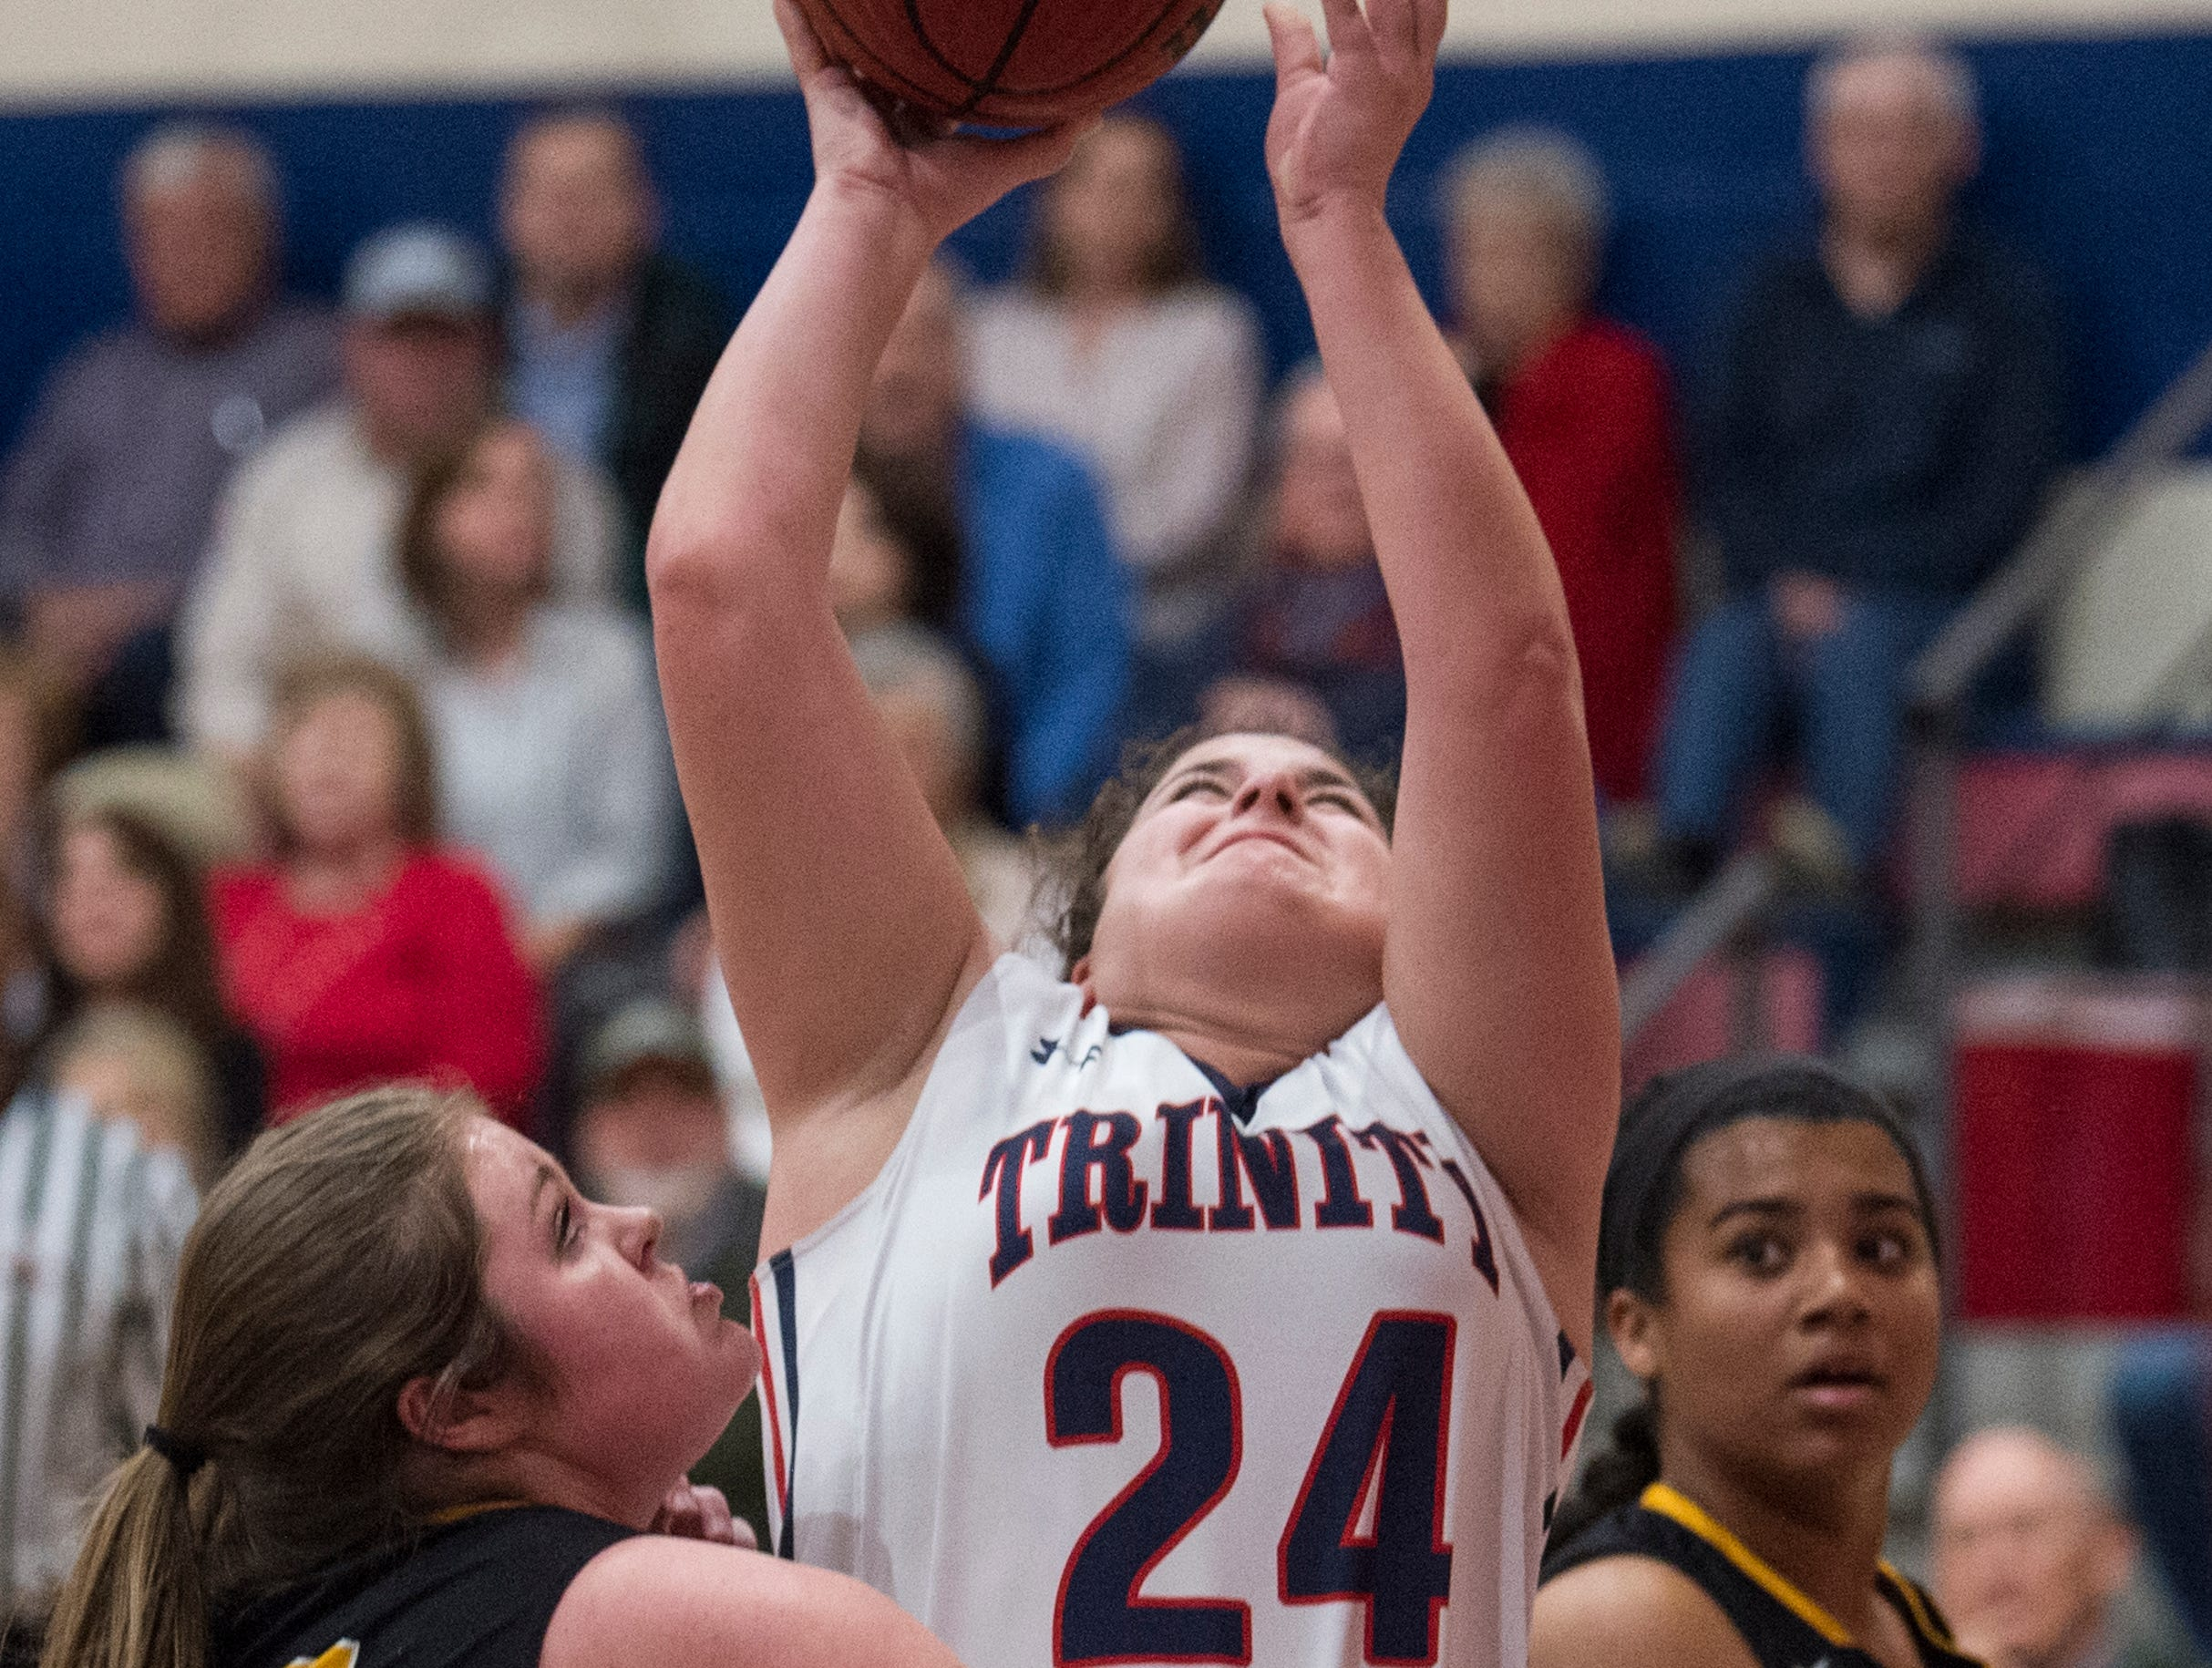 Trinity's Mackenzie Avant (24) goes up for a layup during the Class 4A subregional at Trinity Presbyterian High School in Montgomery, Ala., on Monday, Feb. 11, 2019. Trinity defeated Ashford 66-28.